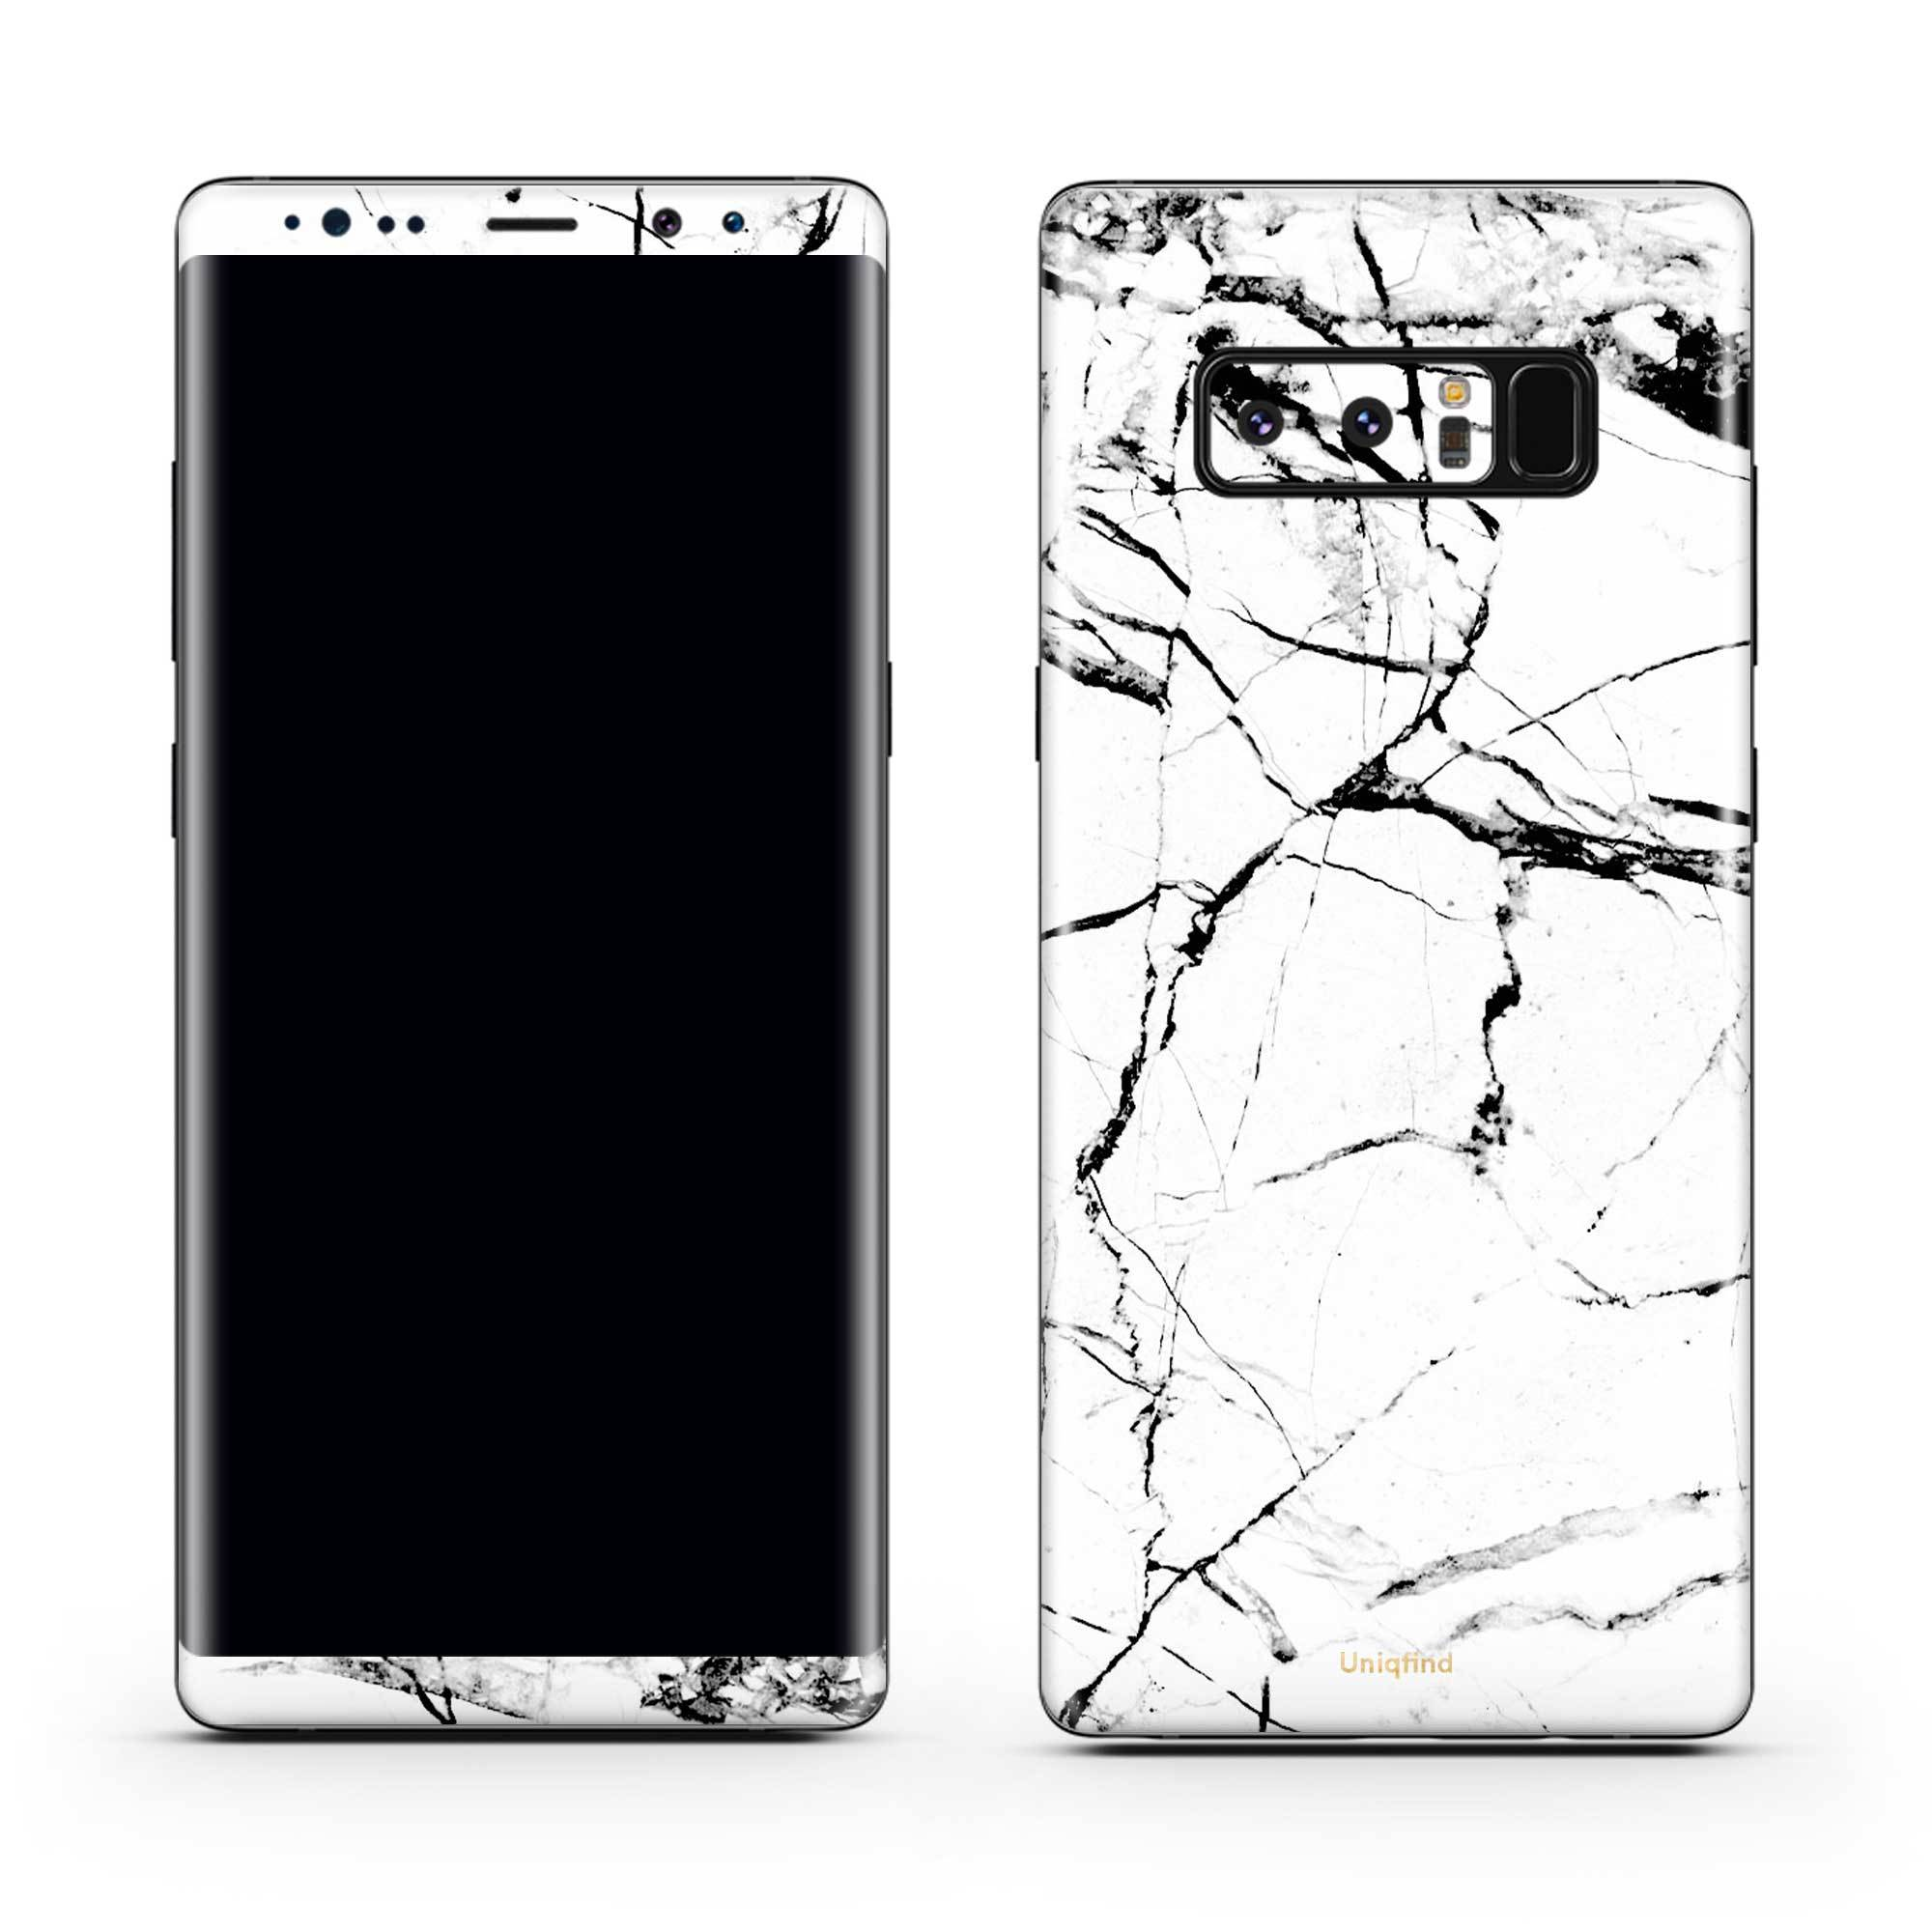 White Hyper Marble Galaxy Note 8 Skin + Case